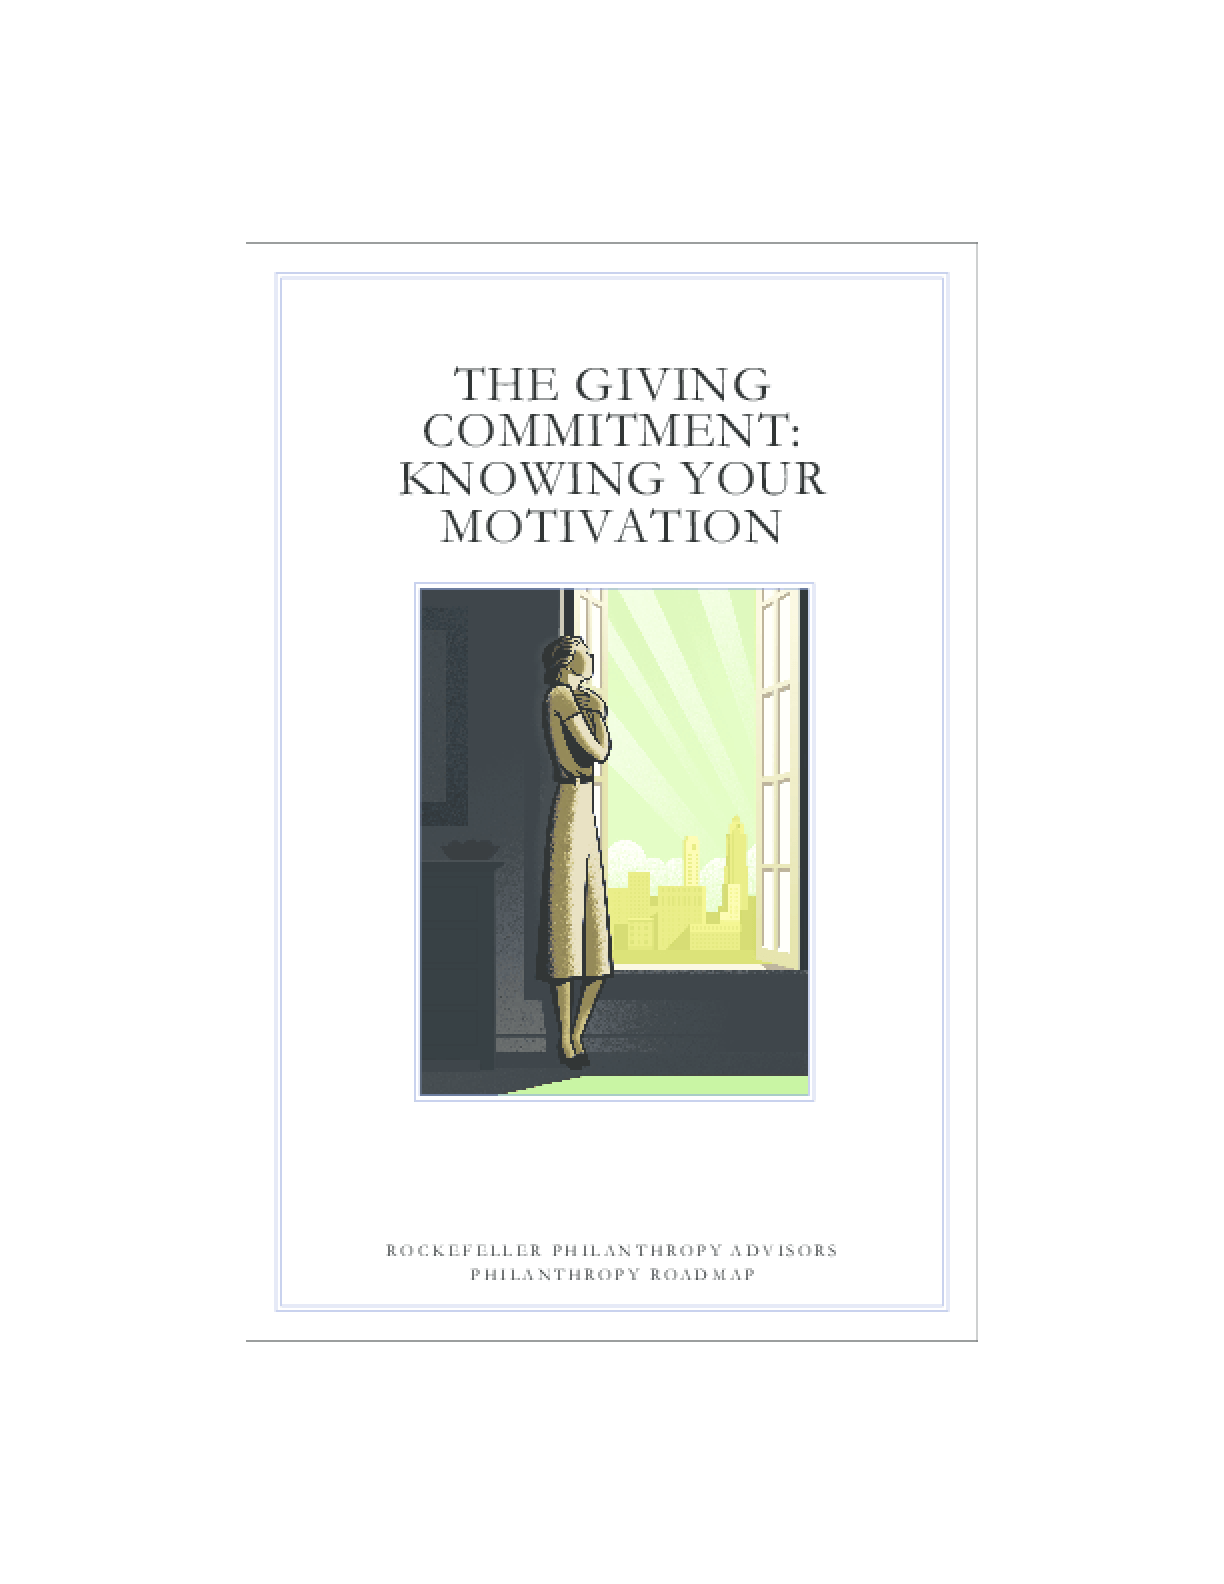 The Giving Commitment: Knowing Your Motivation